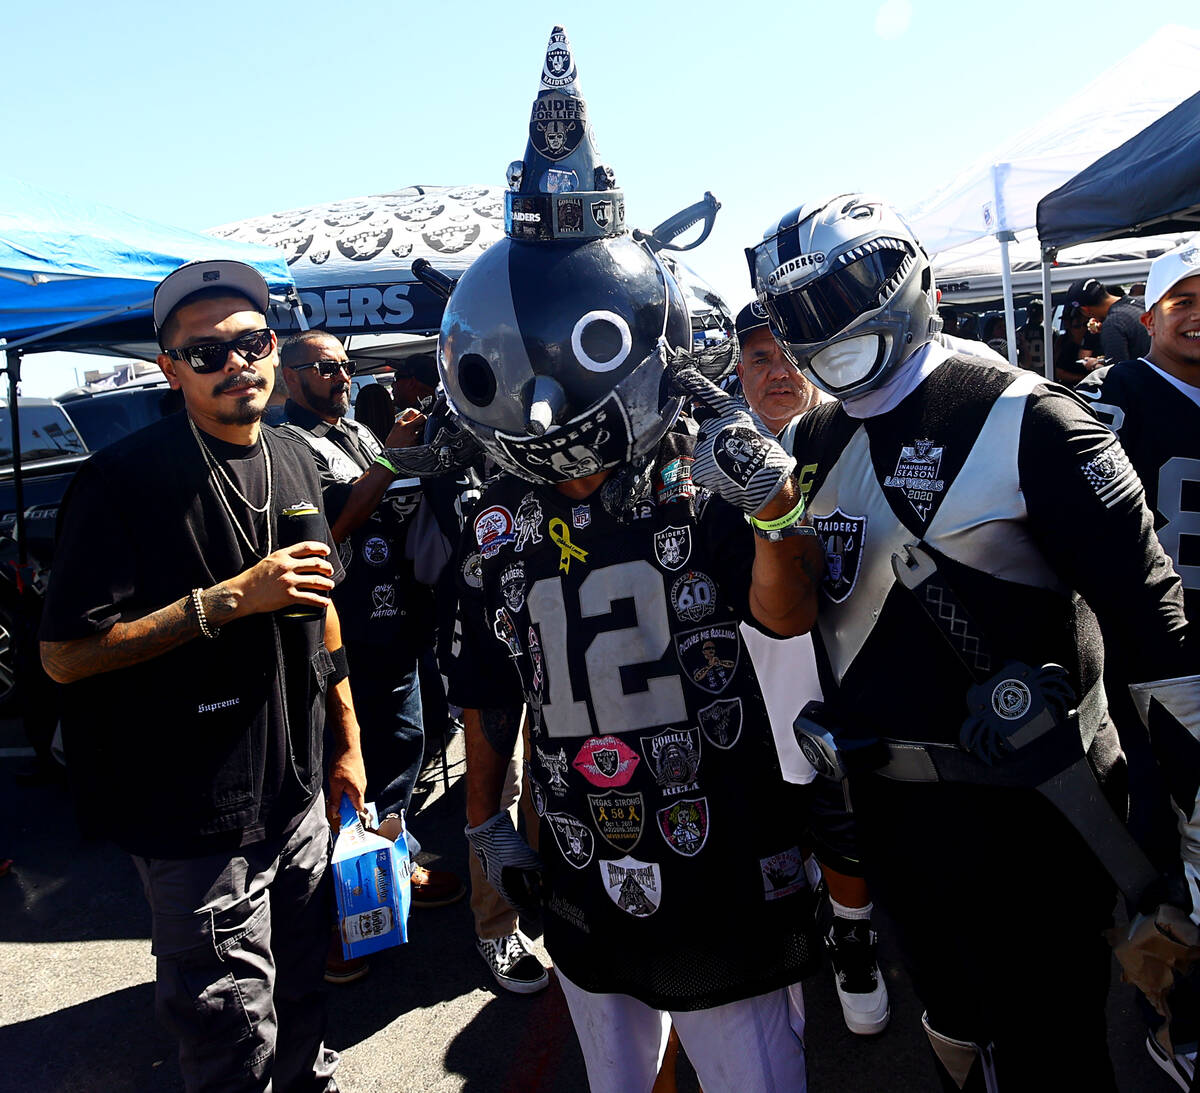 Fans spend time tailgating before an NFL football game between the Raiders and the Baltimore Ra ...